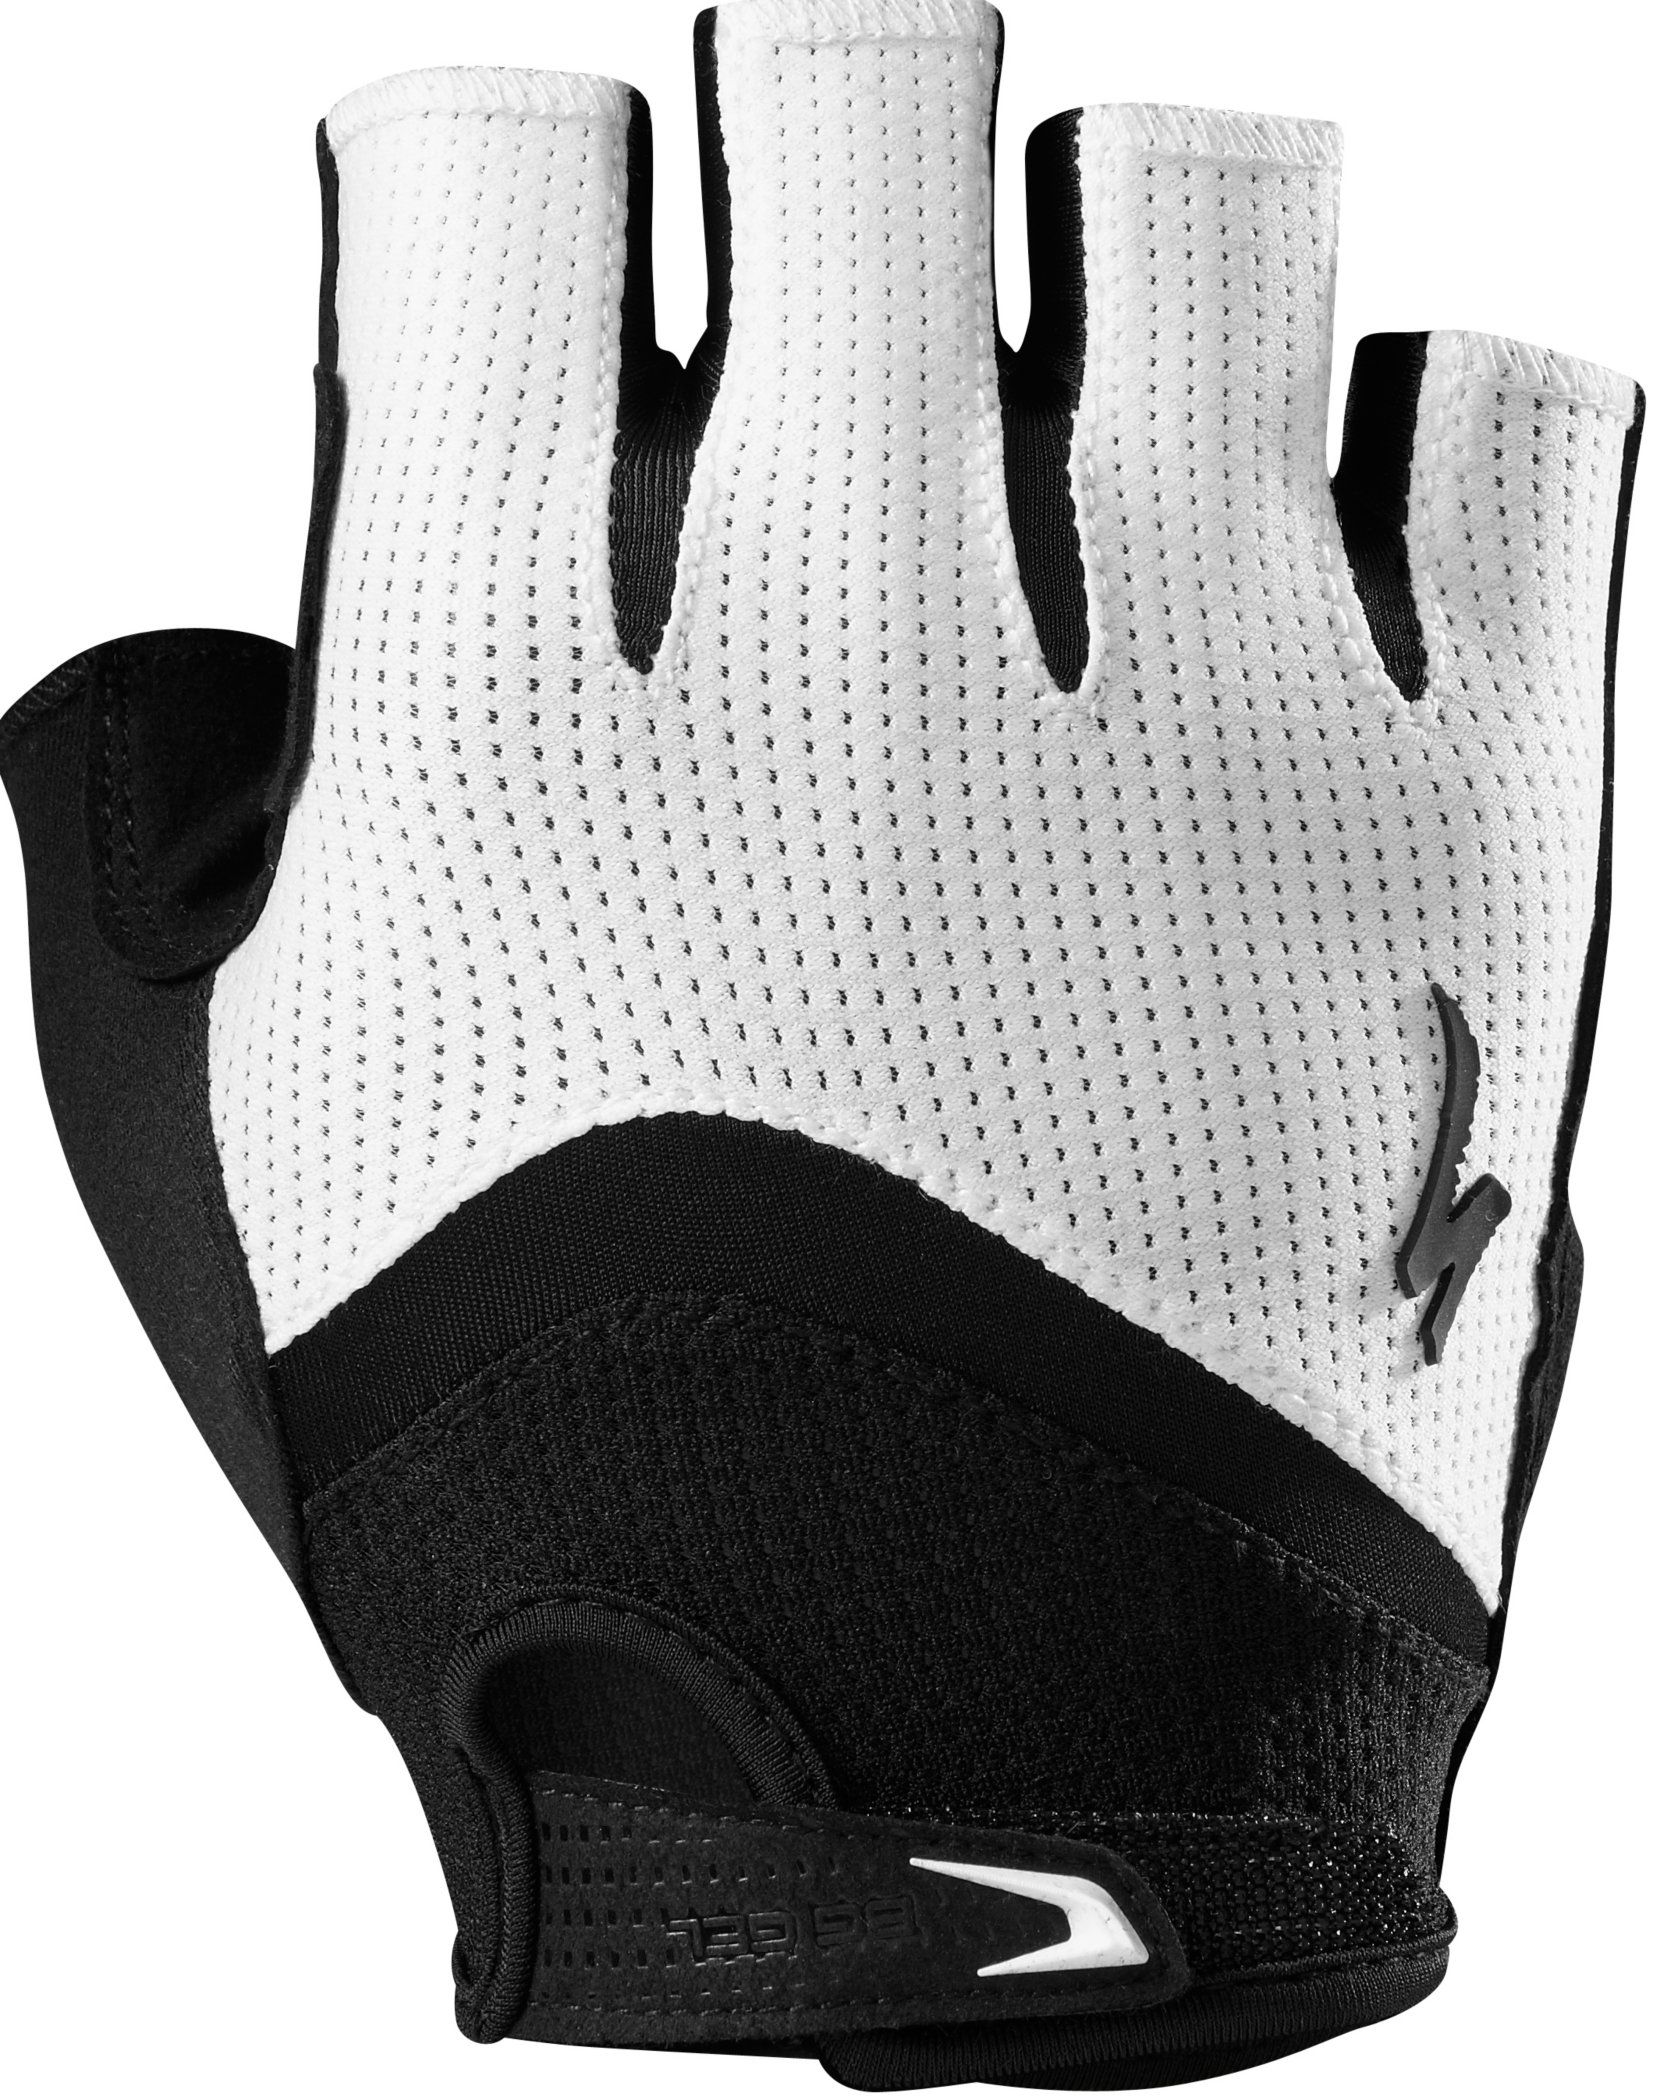 SPECIALIZED BG GEL GLOVE SF WHT/BLK S - Bikedreams & Dustbikes